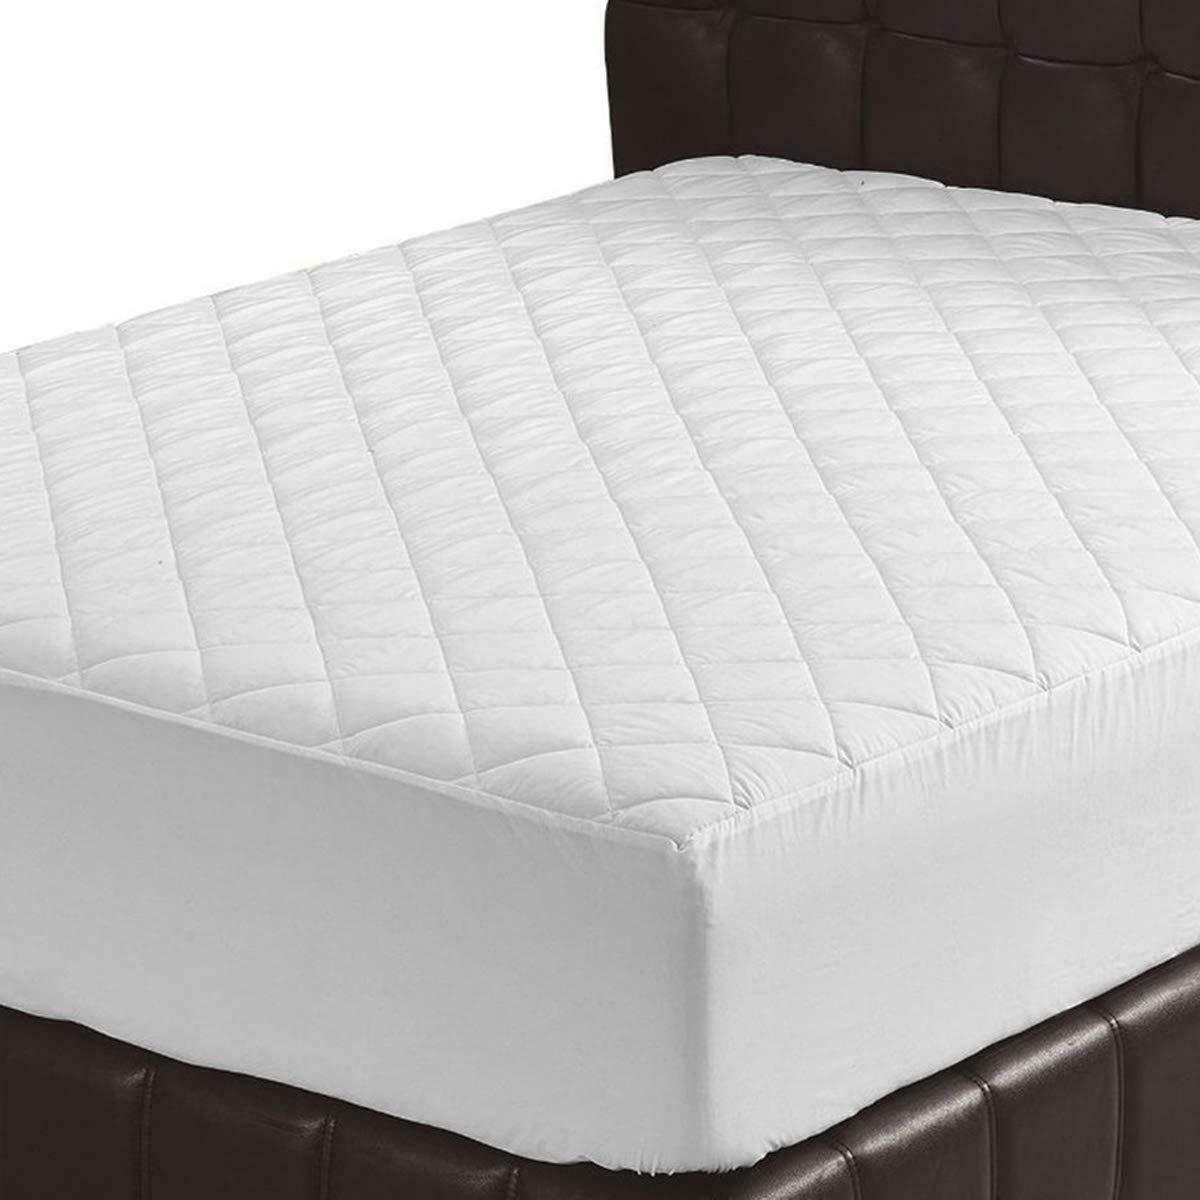 "Quilted Fitted Mattress Pad Cover Stretches Up To 16"" Deep B"